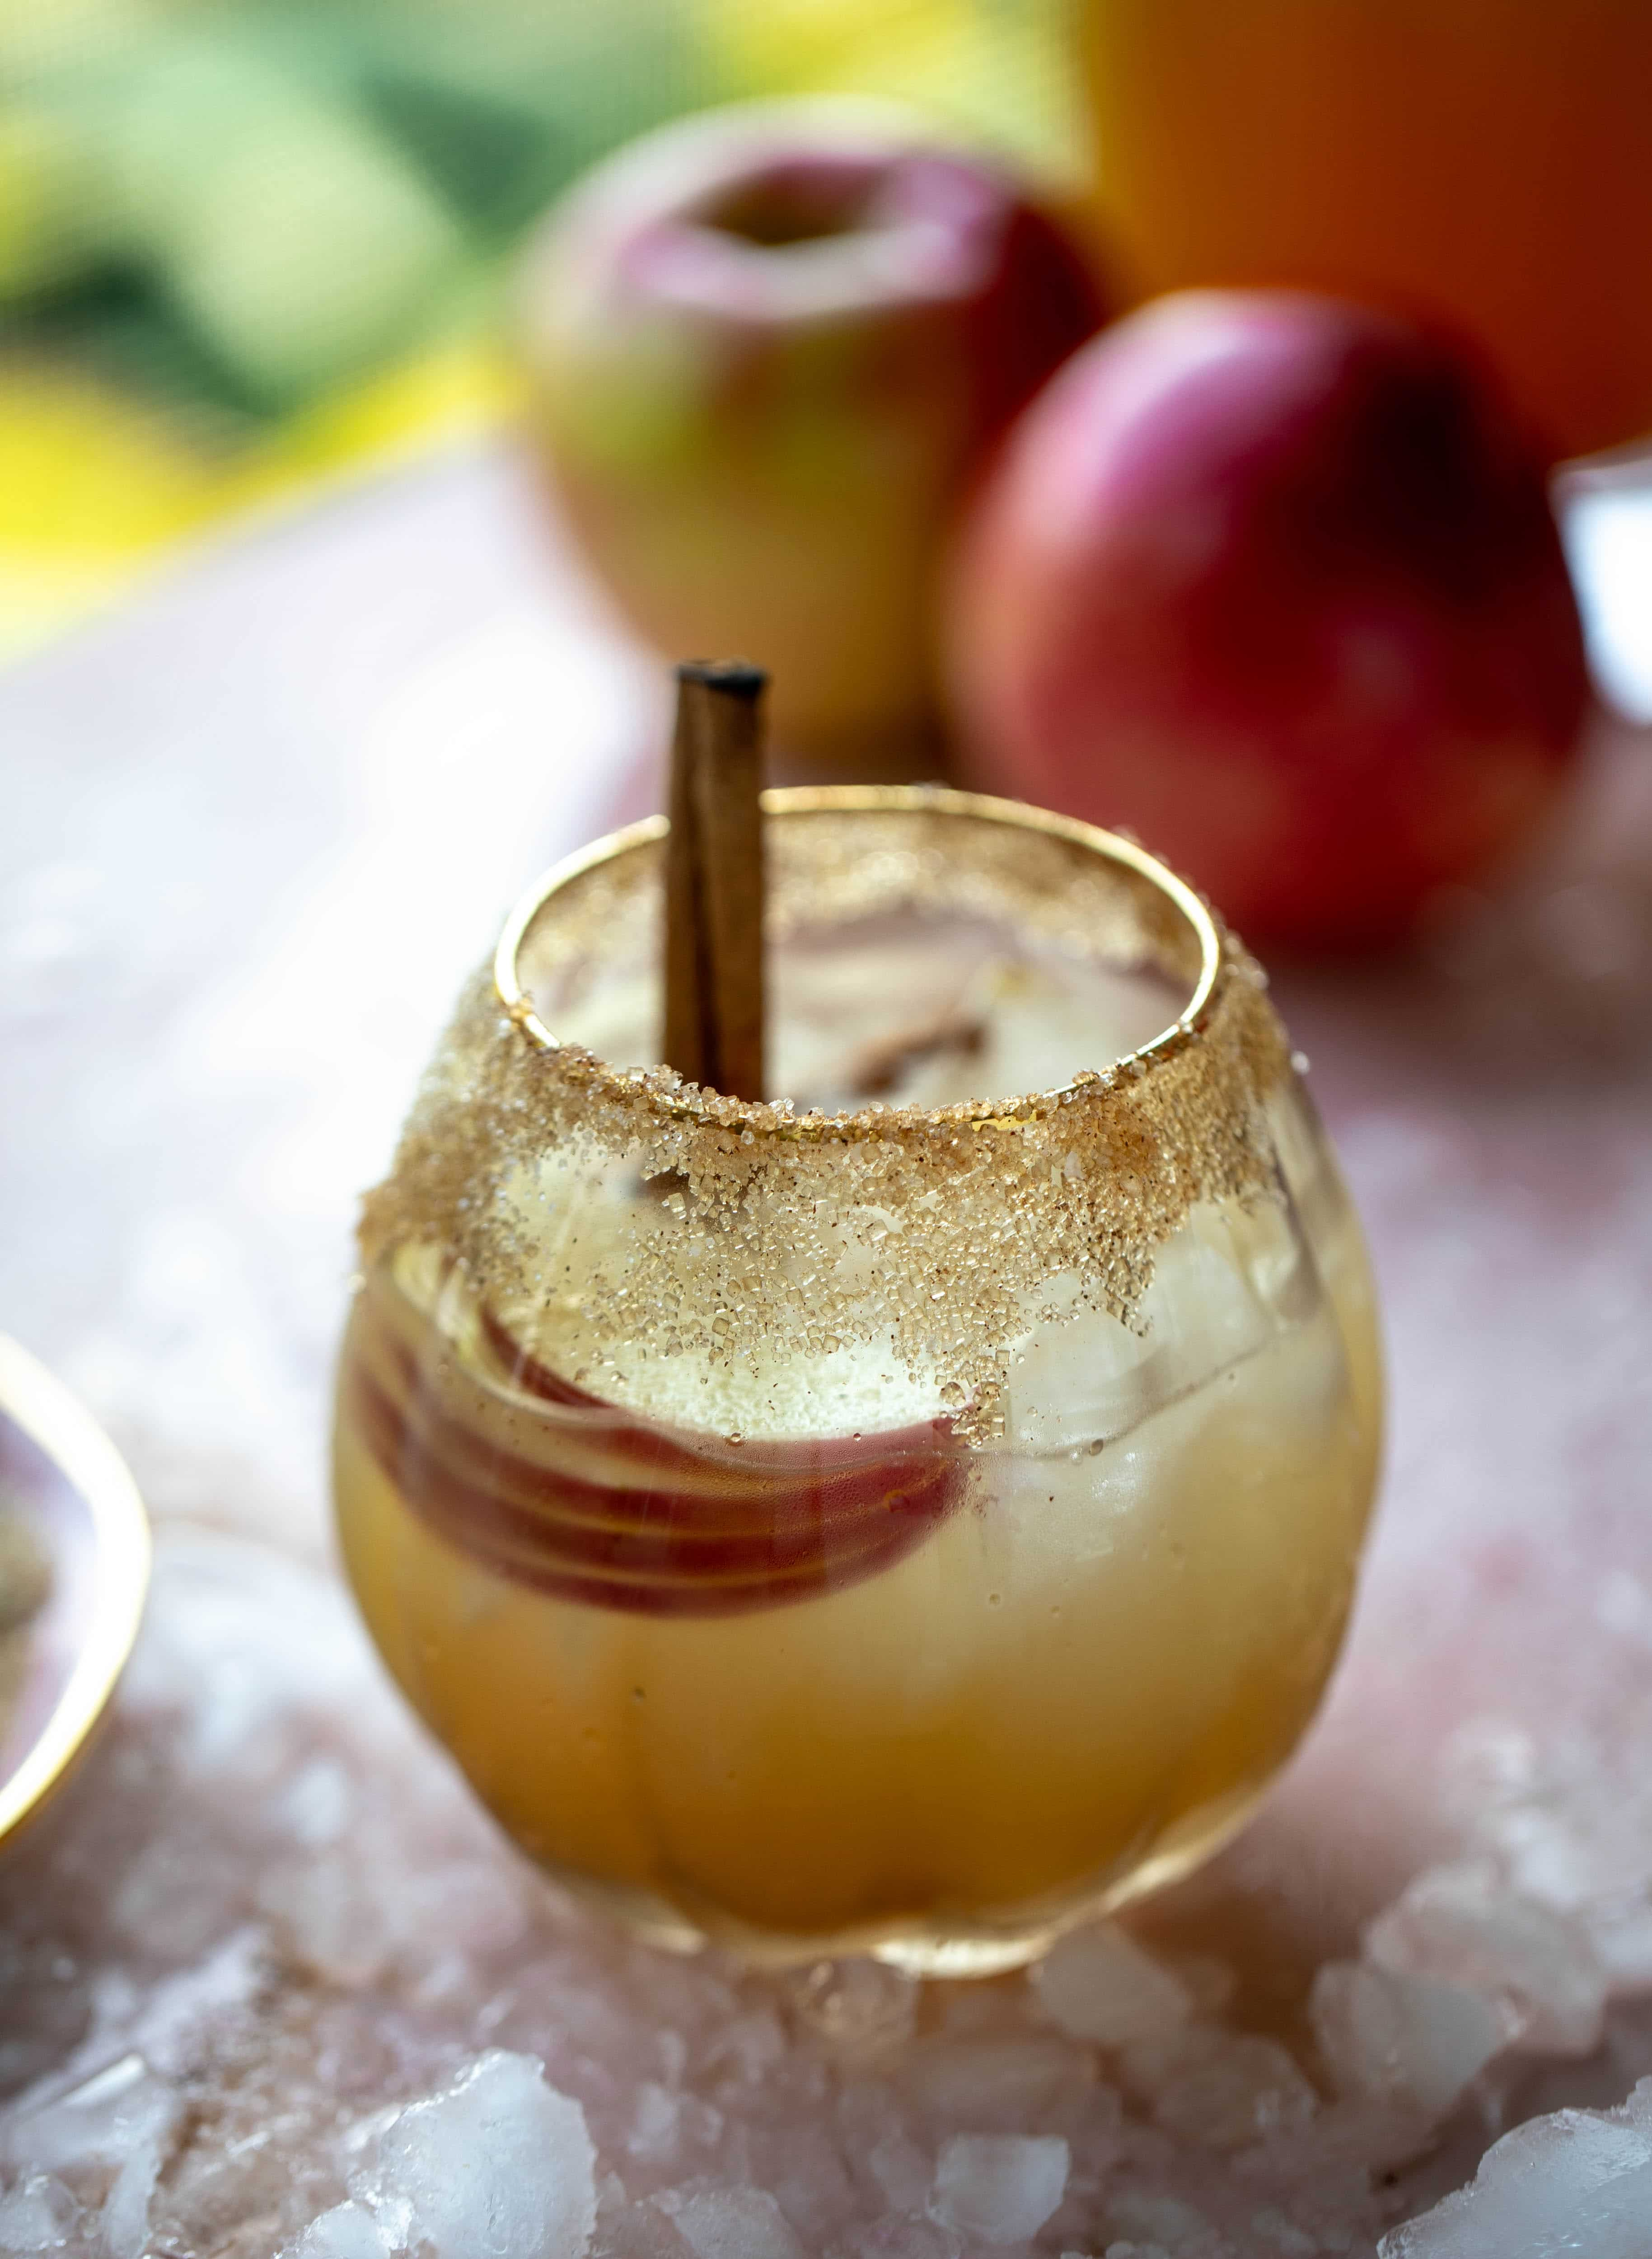 This apple cider mezcal margarita is a delicious, smoky cocktail for fall! It's warming and refreshing and delicious all at once. Cheers!